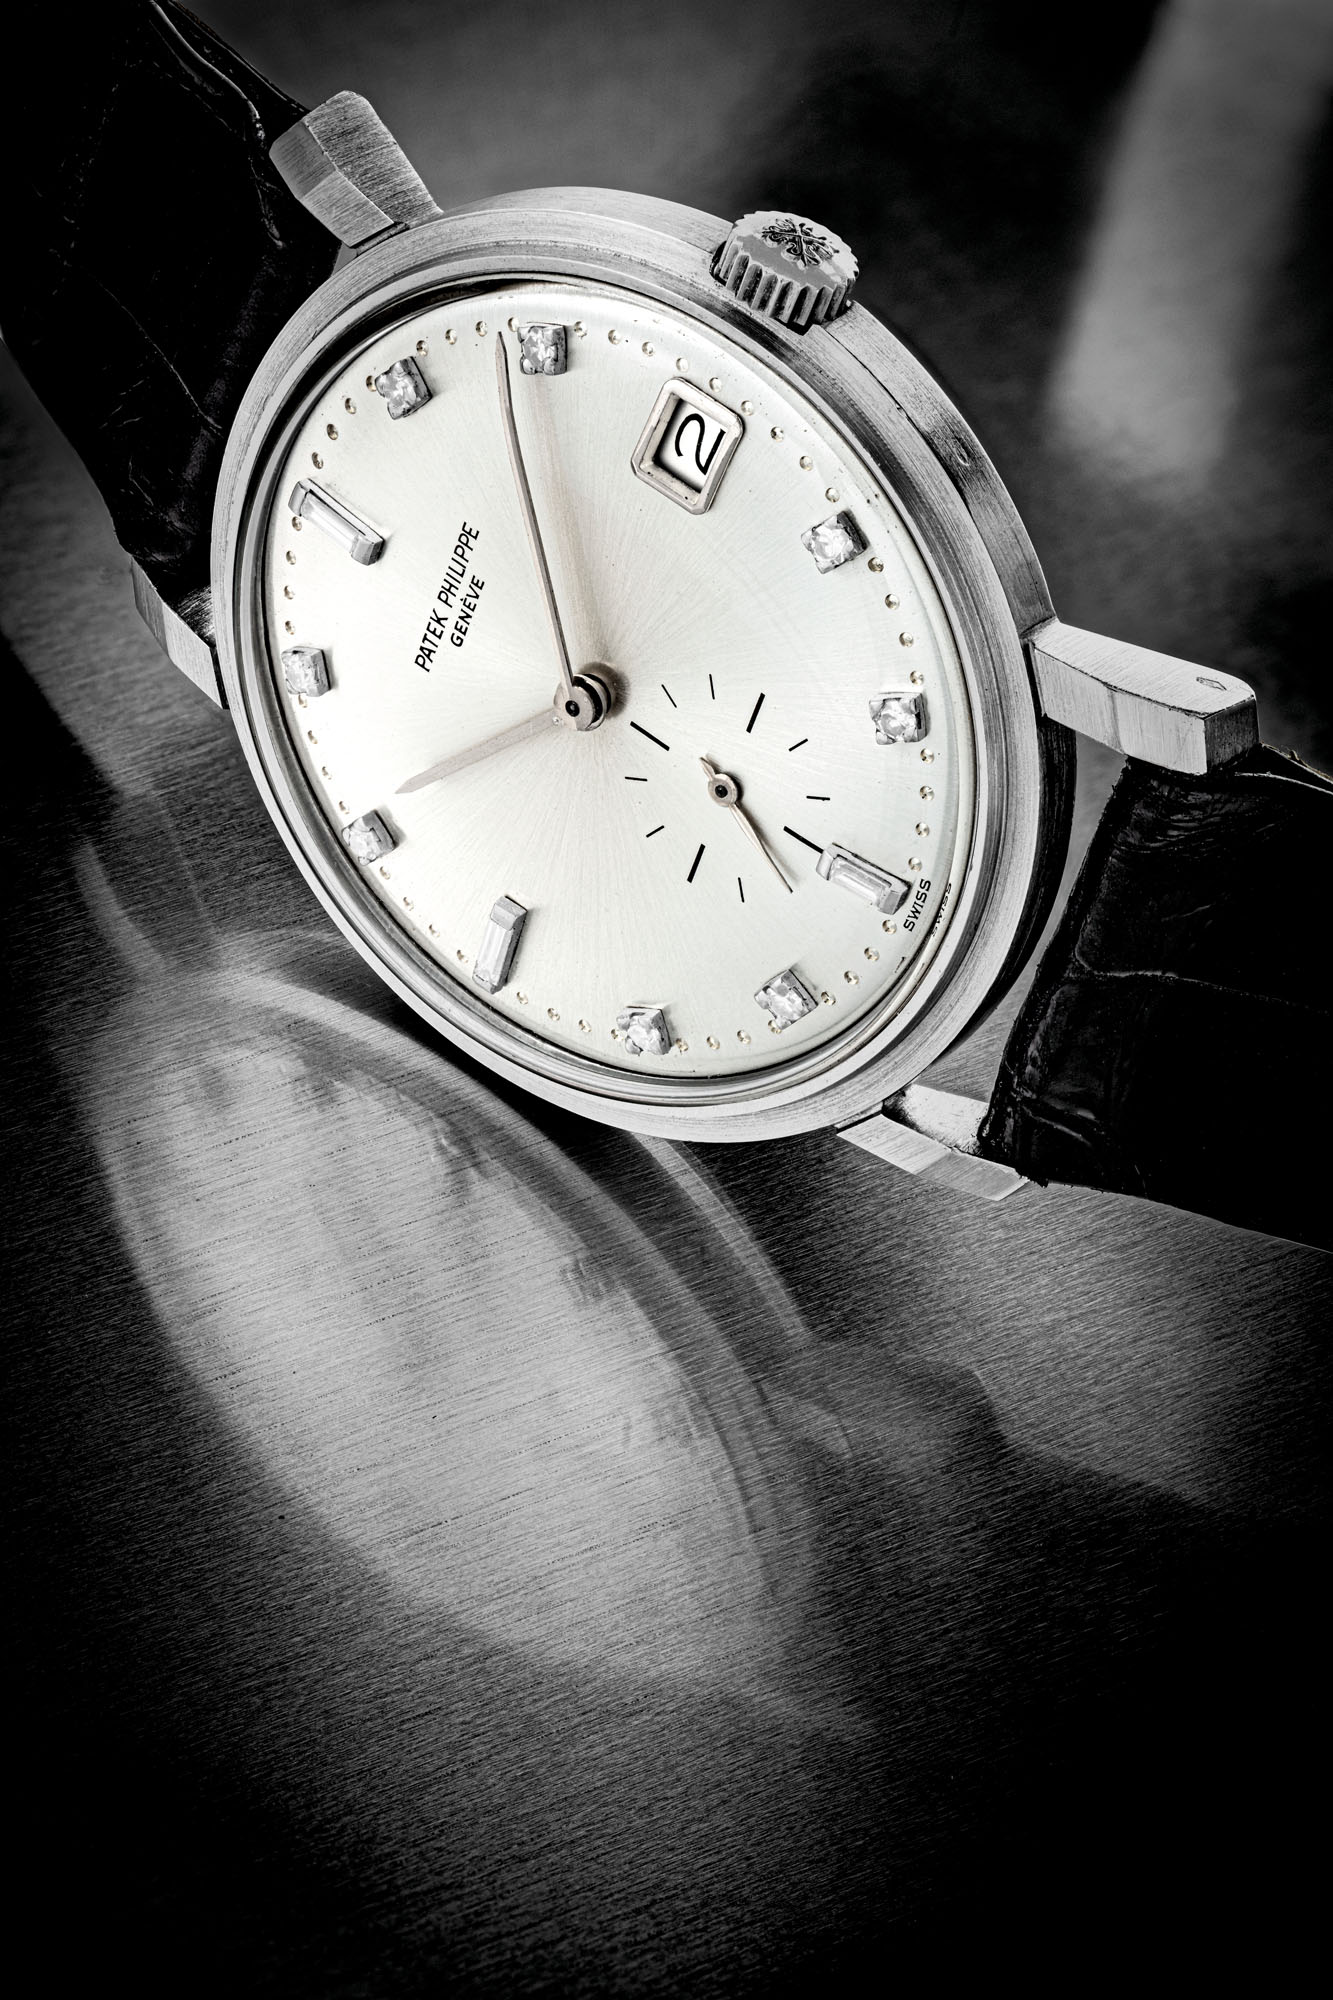 PATEK PHILIPPE. AN EXTREMELY RARE PLATINUM AND DIAMOND-SET AUTOMATIC WRISTWATCH WITH DATE